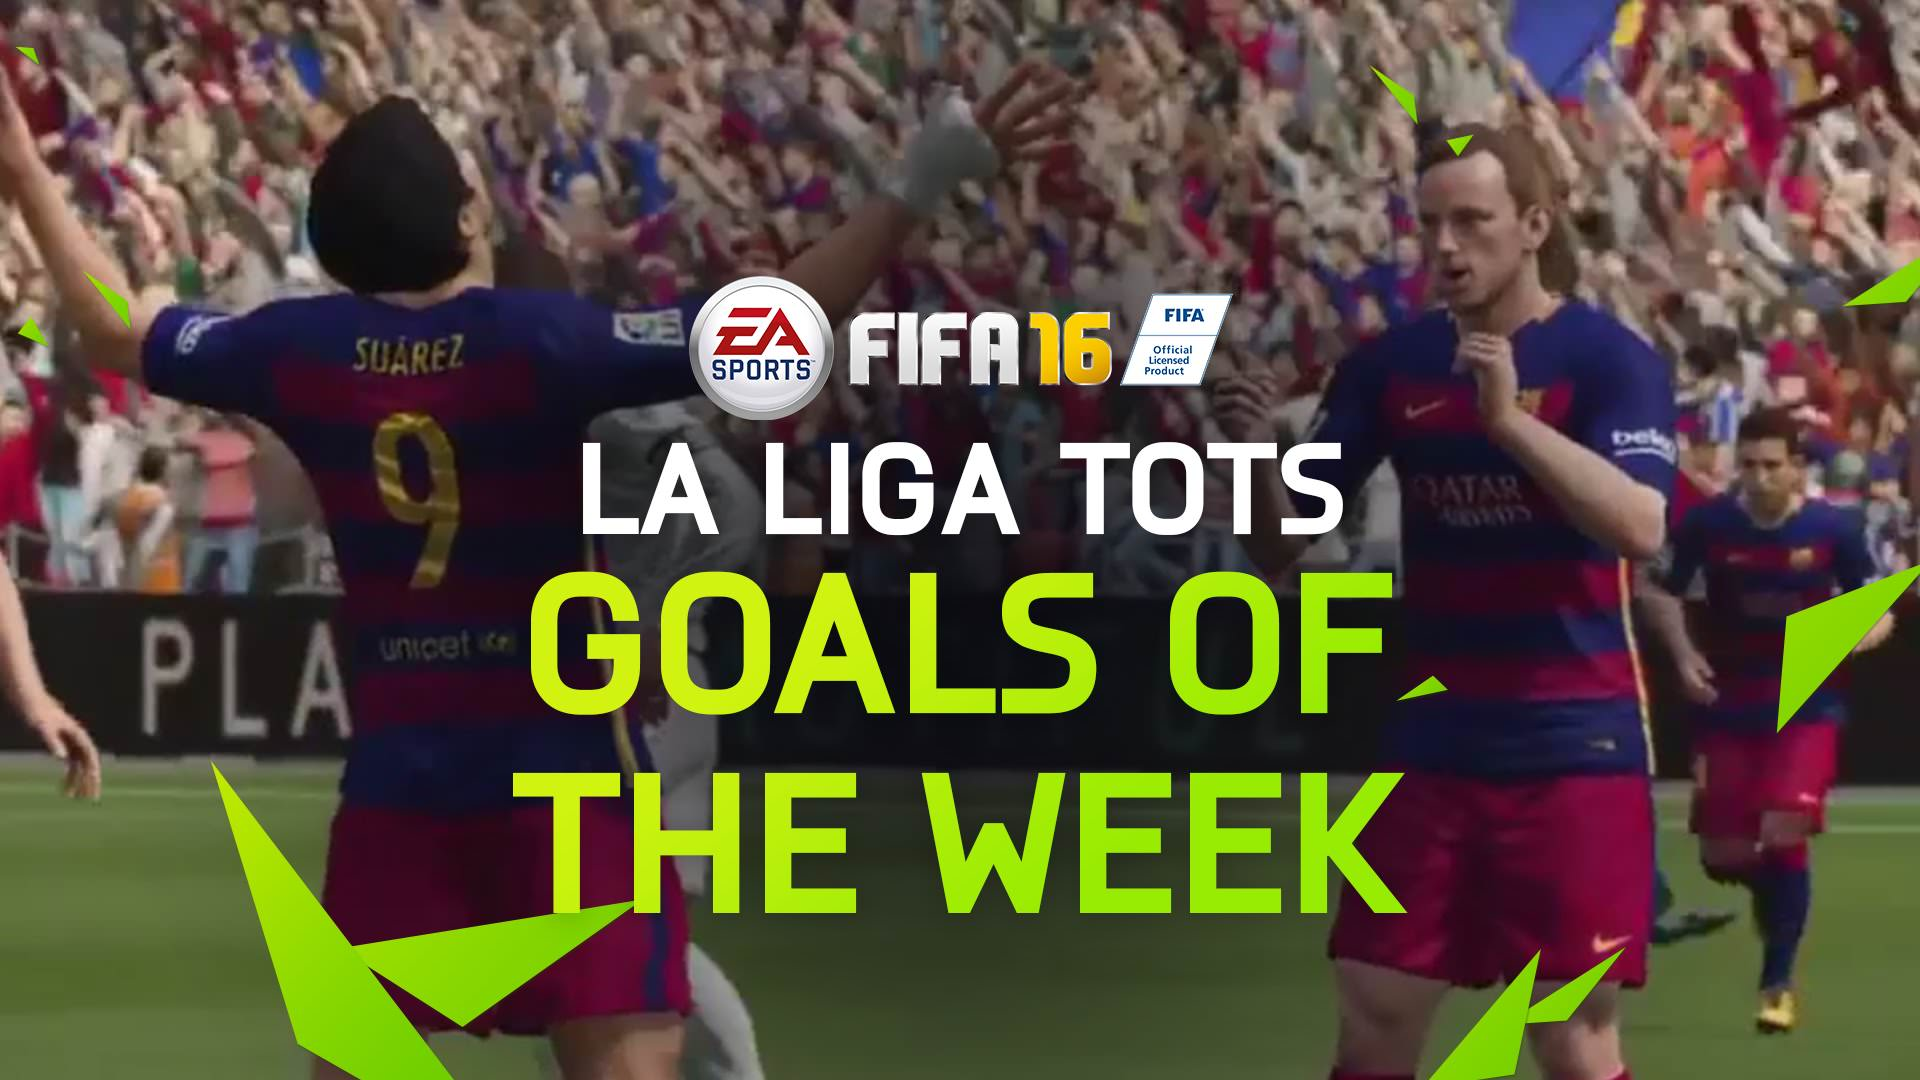 FIFA 16 Goals of the Week – La Liga TOTS